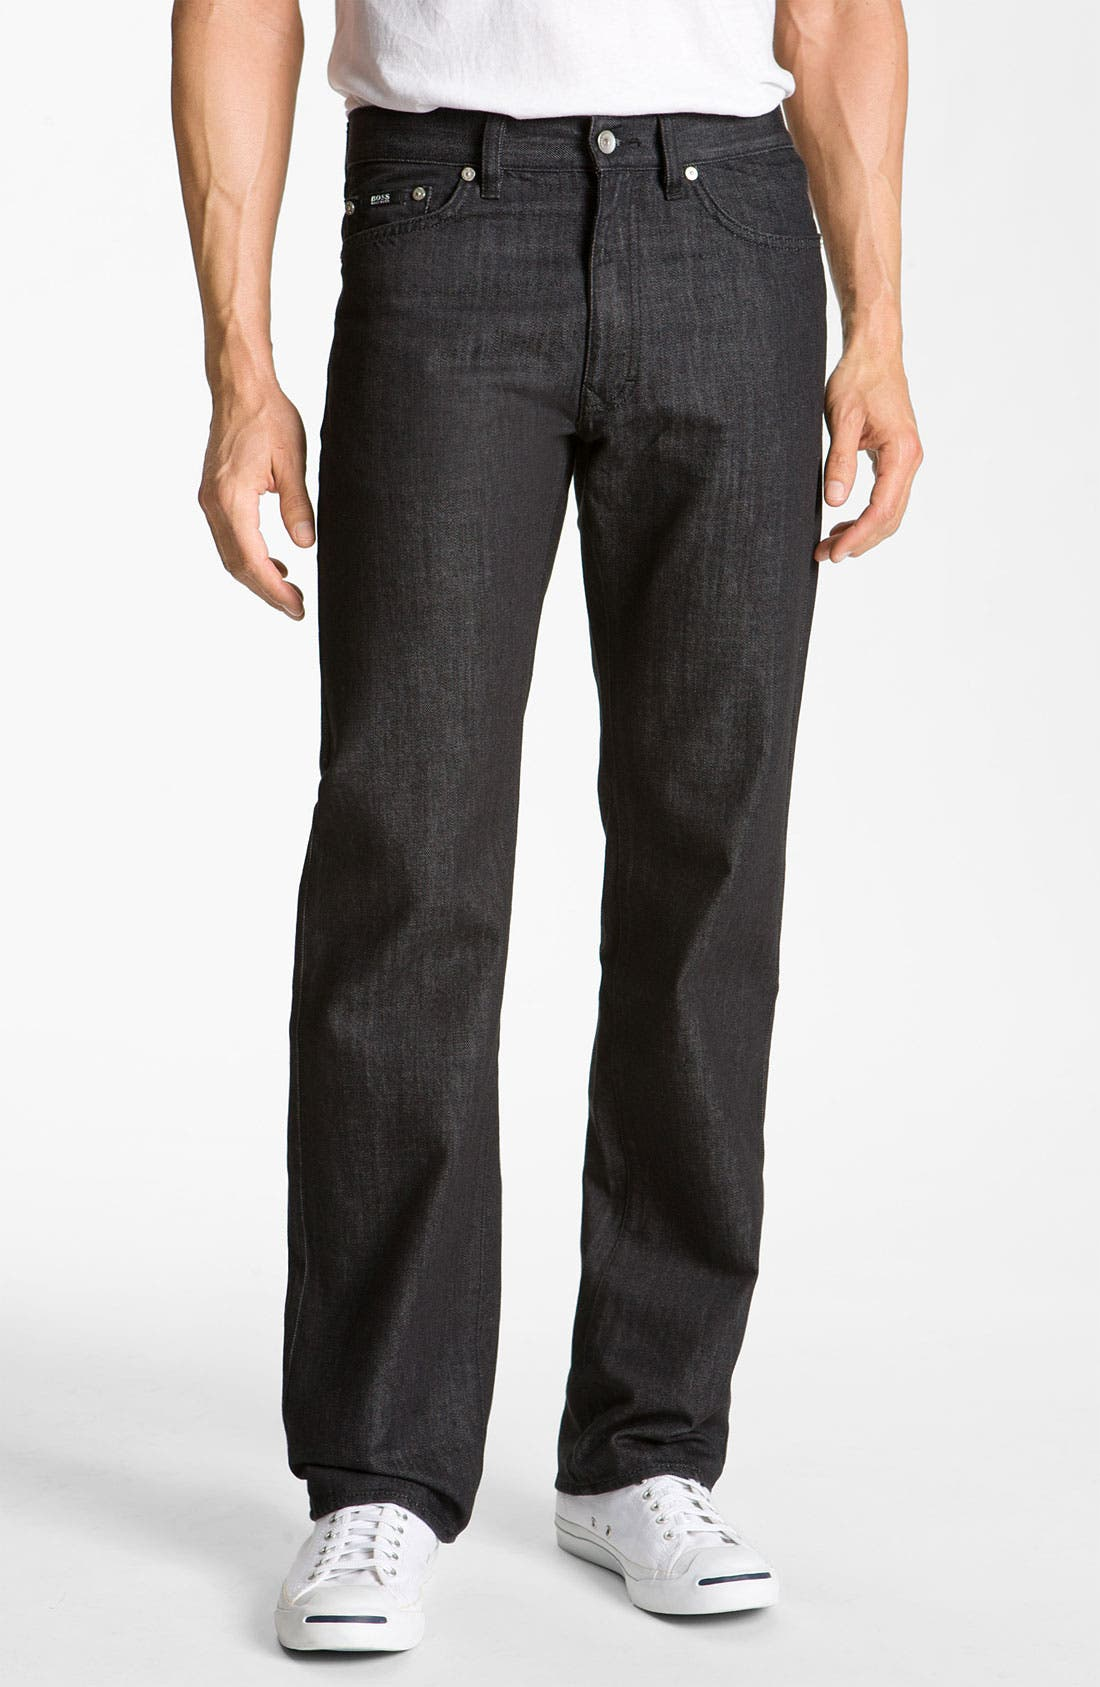 Alternate Image 1 Selected - BOSS Black 'Texas' Bootcut Jeans (Black)